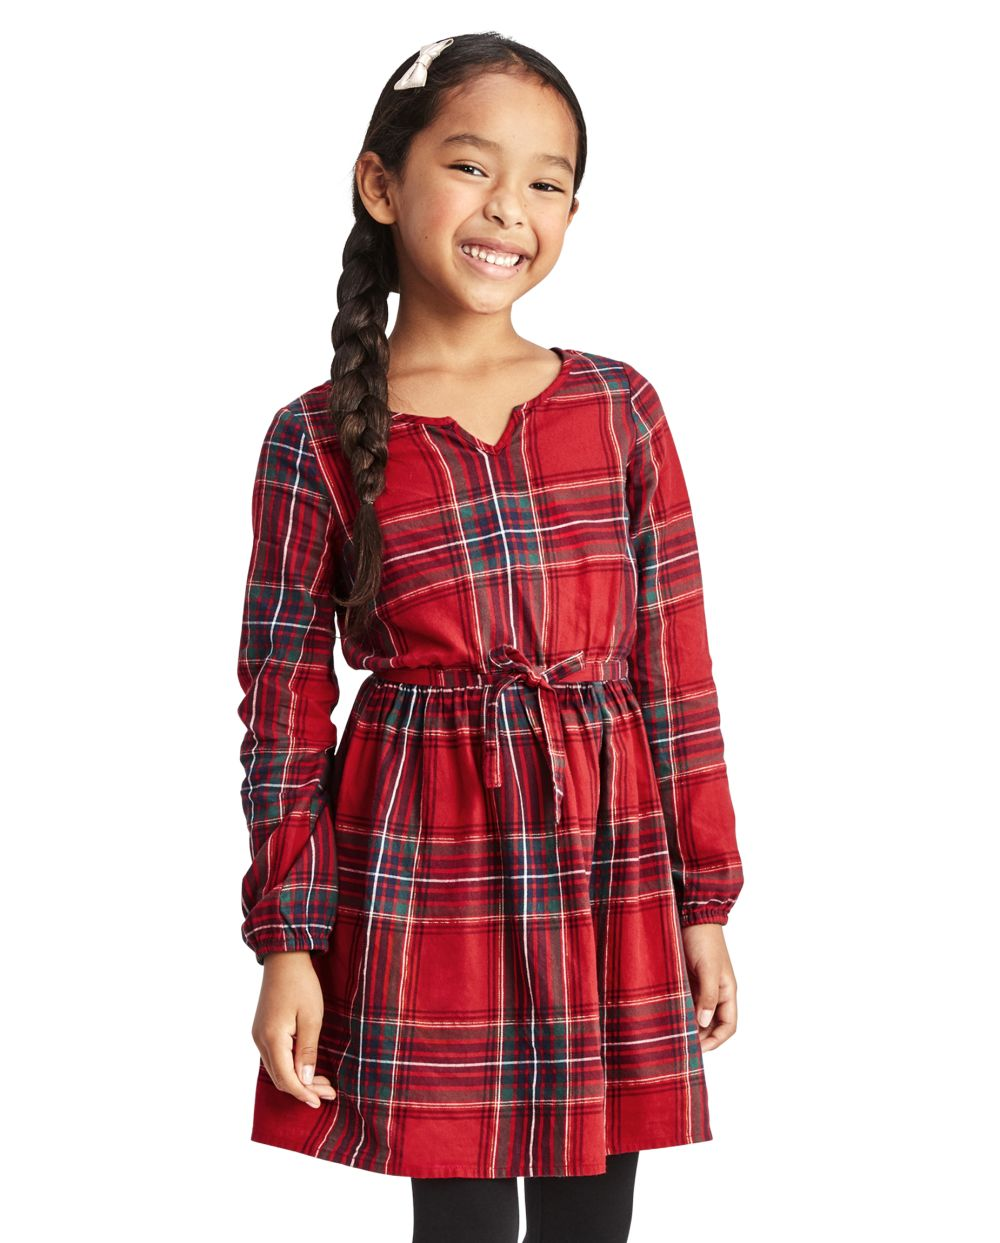 Girls Matching Family Plaid Peasant Dress